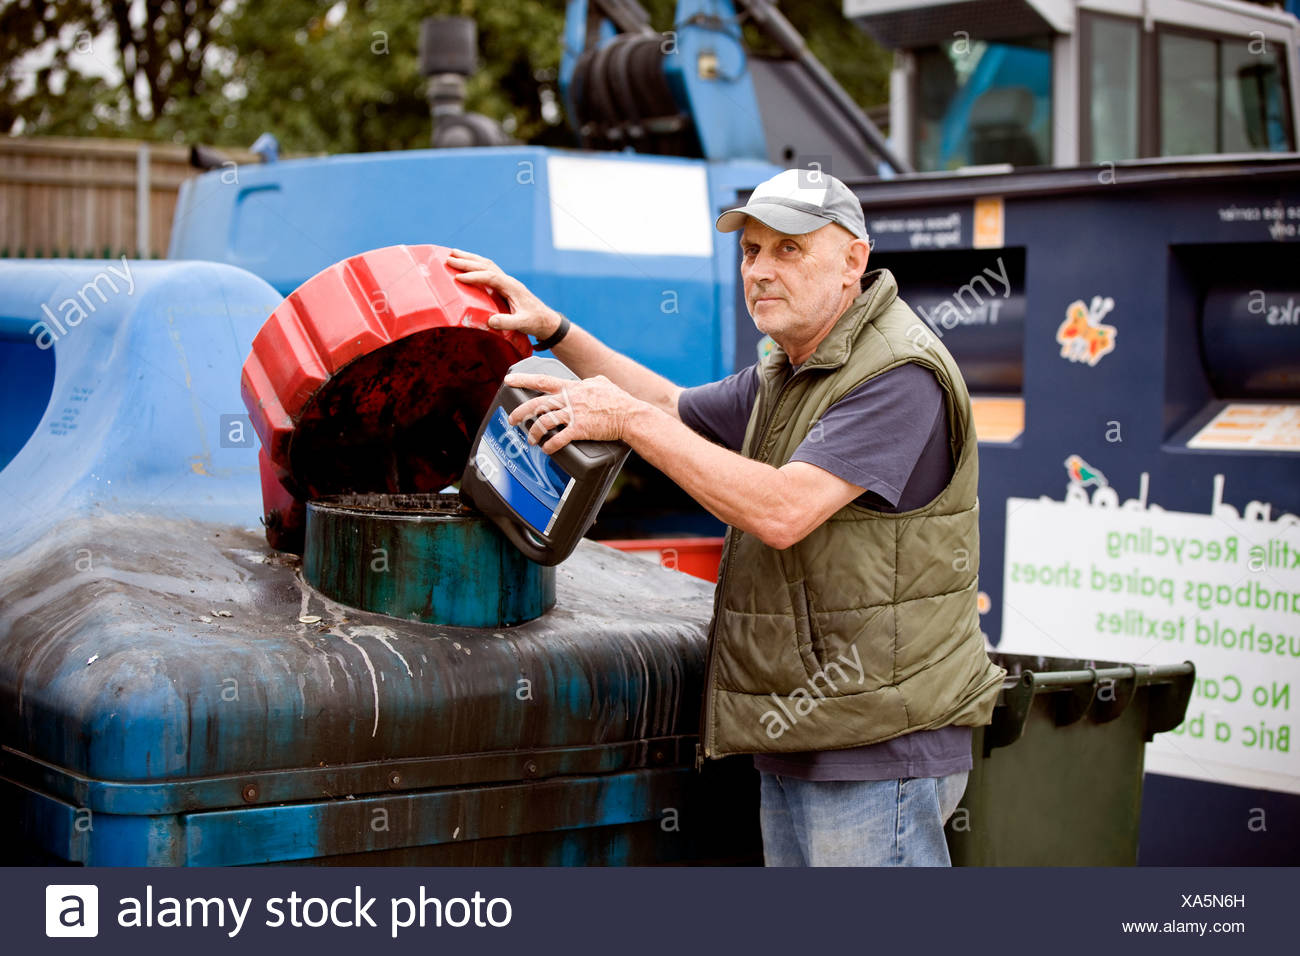 A senior man pouring oil into a recycling container - Stock Image